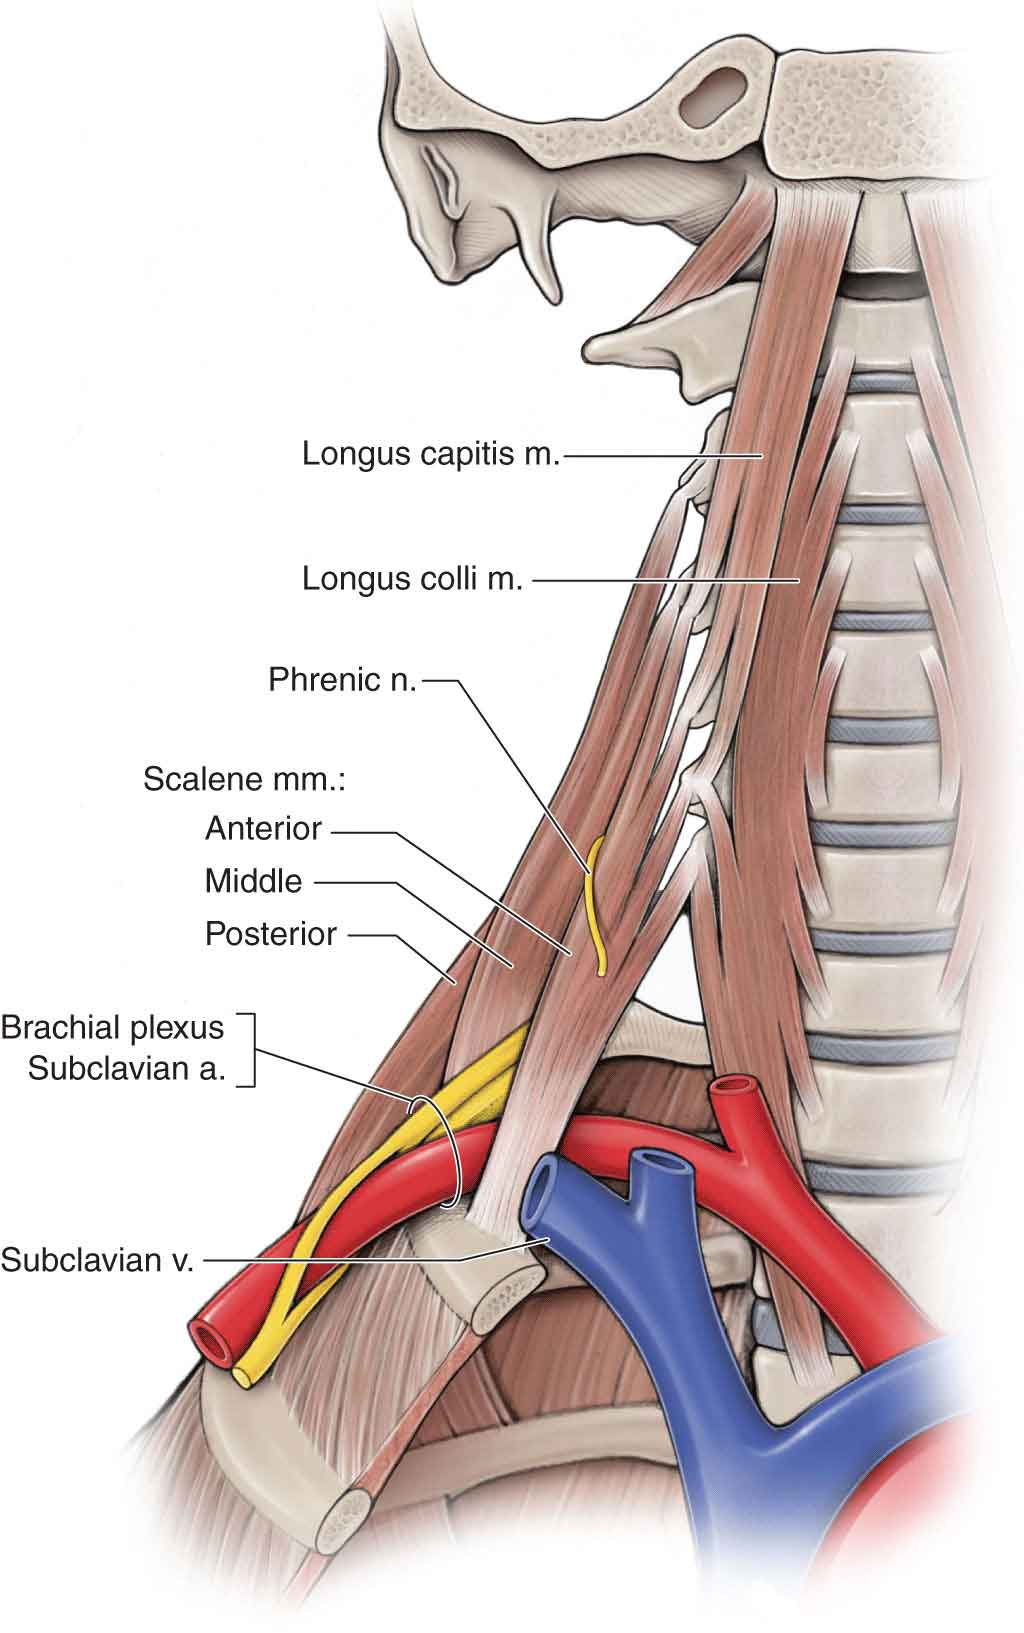 The Cervical Spine | Musculoskeletal Key